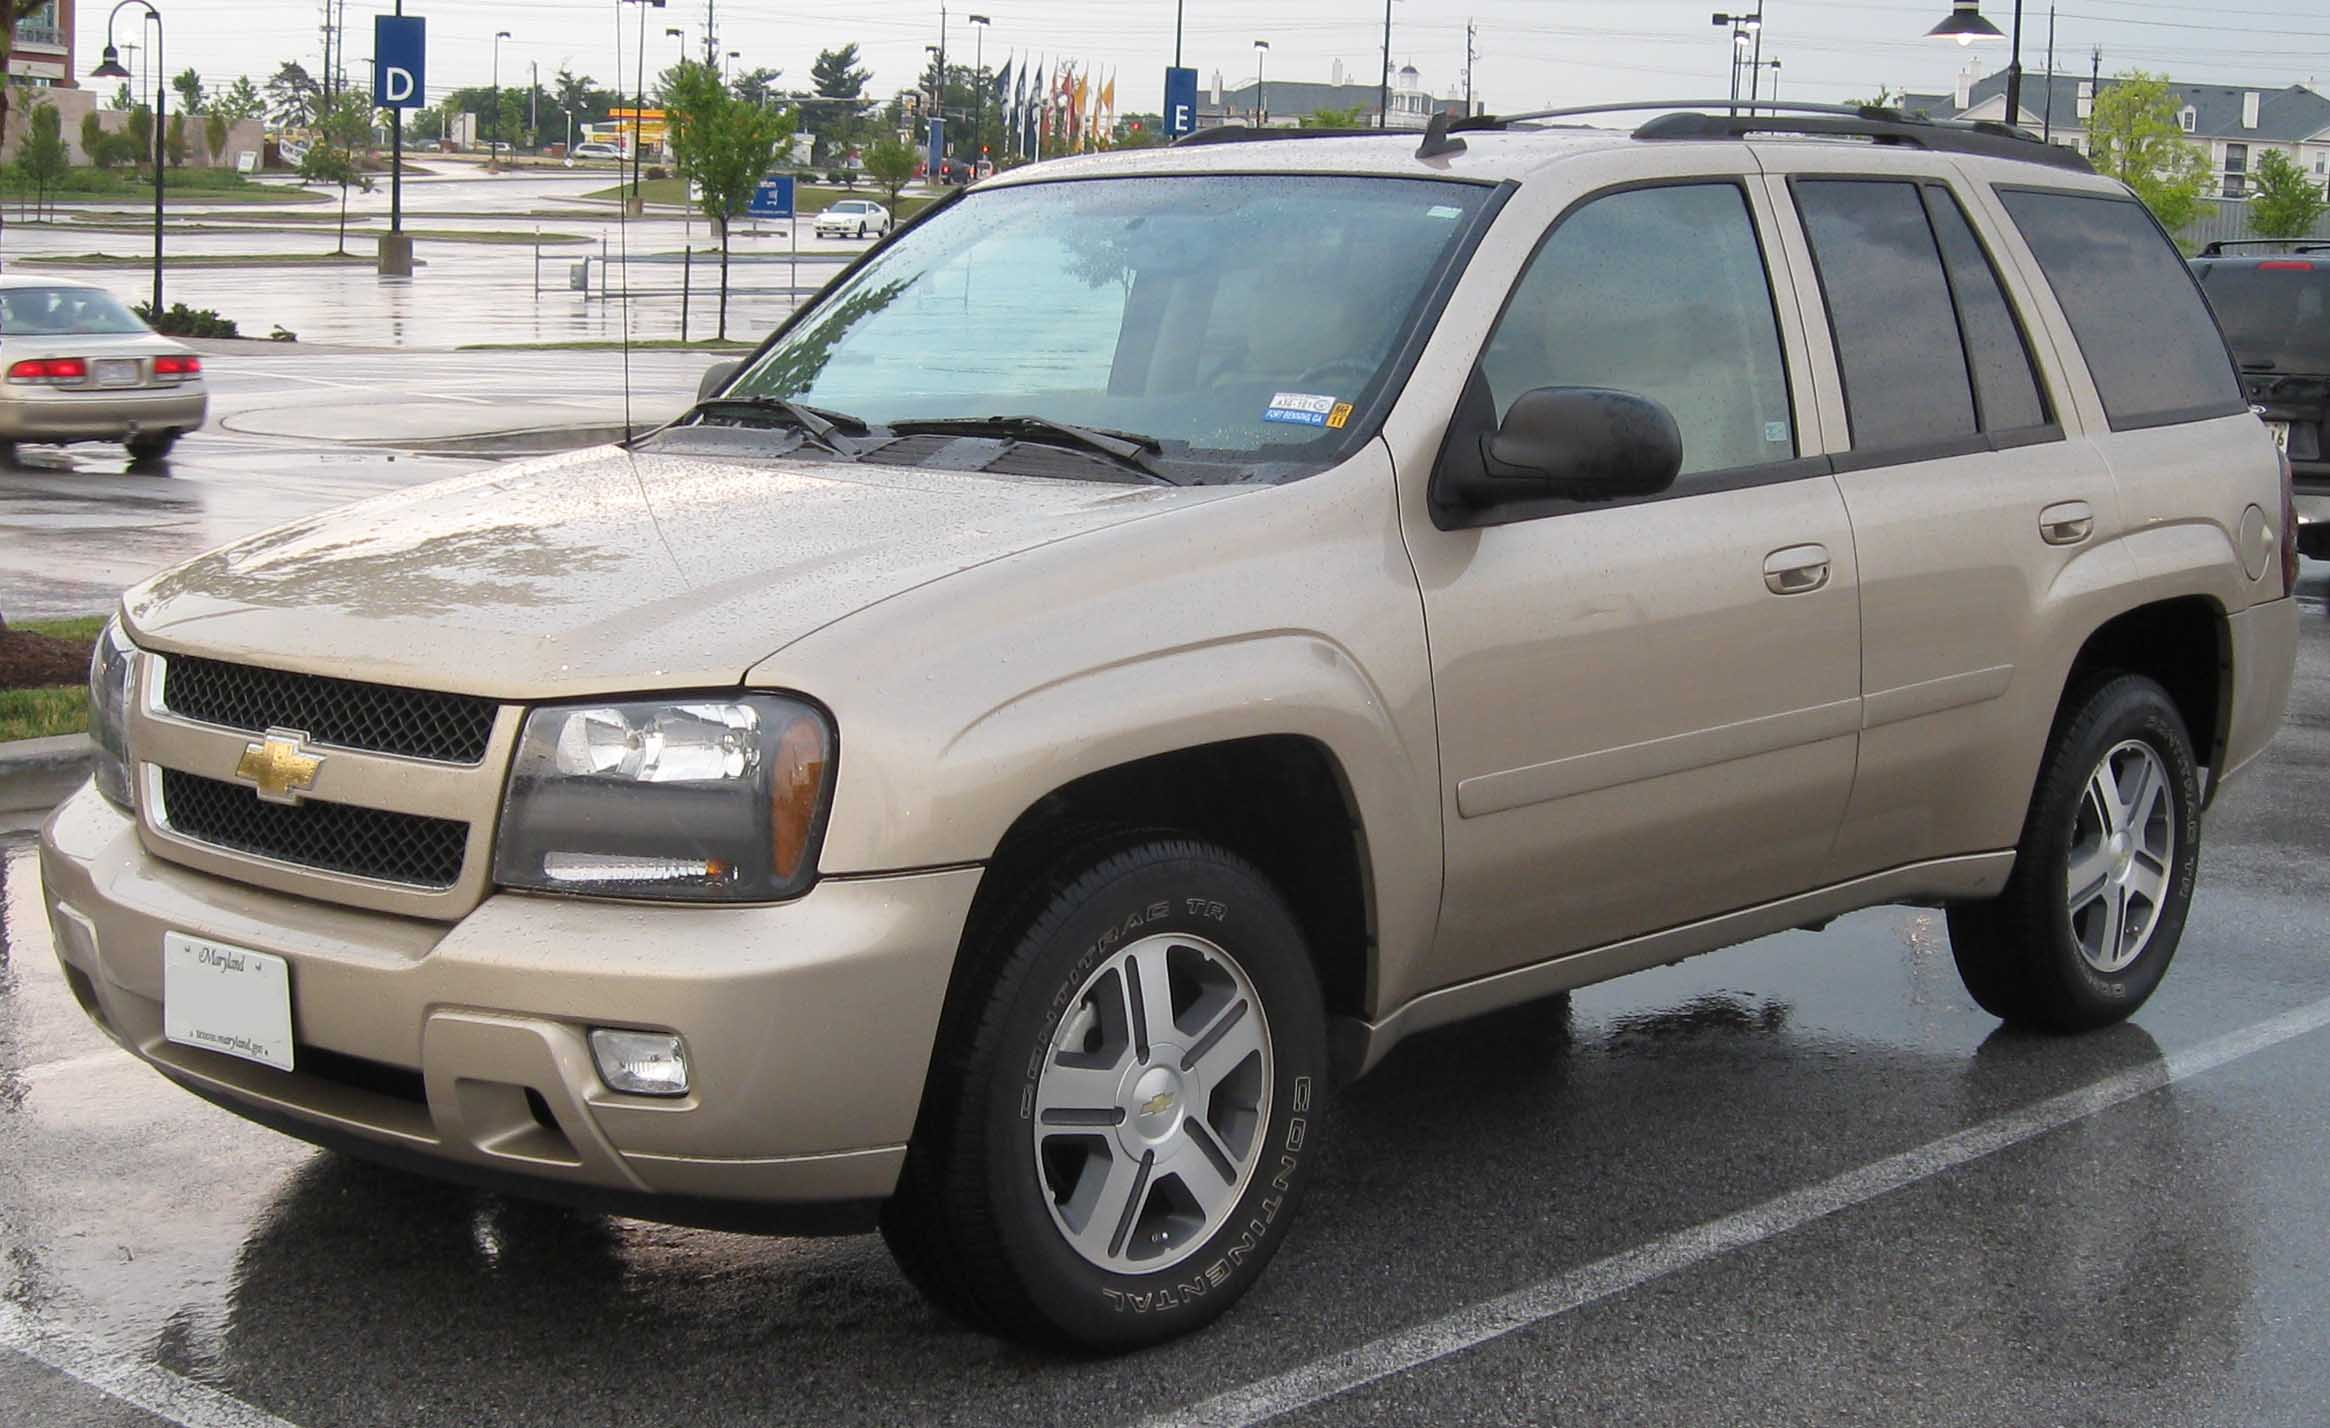 Chevrolet Trailblazer 2009 foto - 3